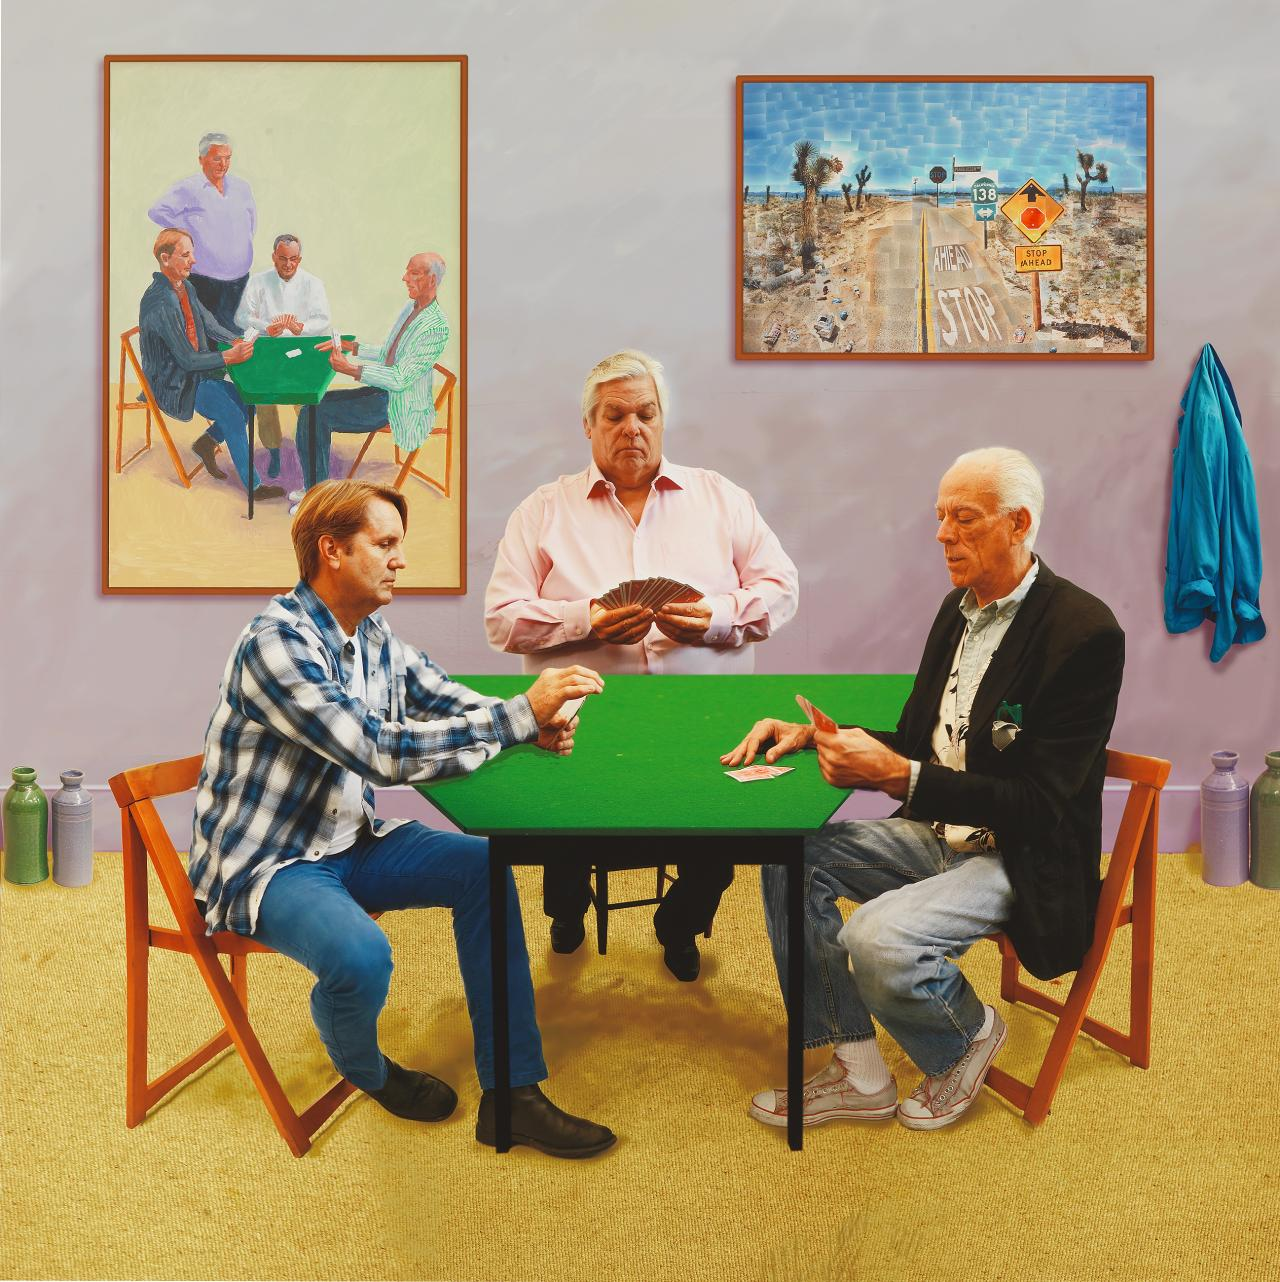 David Hockney<br/> English 1937–<br/> A bigger card players 2015<br/> photographic drawing printed on paper mounted on aluminium<br/> edition 1 of 12<br/> 177.2 x 177.2 cm<br/> Collection David Hockney Foundation<br/> © David Hockney<br/> Photo Credit: Richard Schmidt